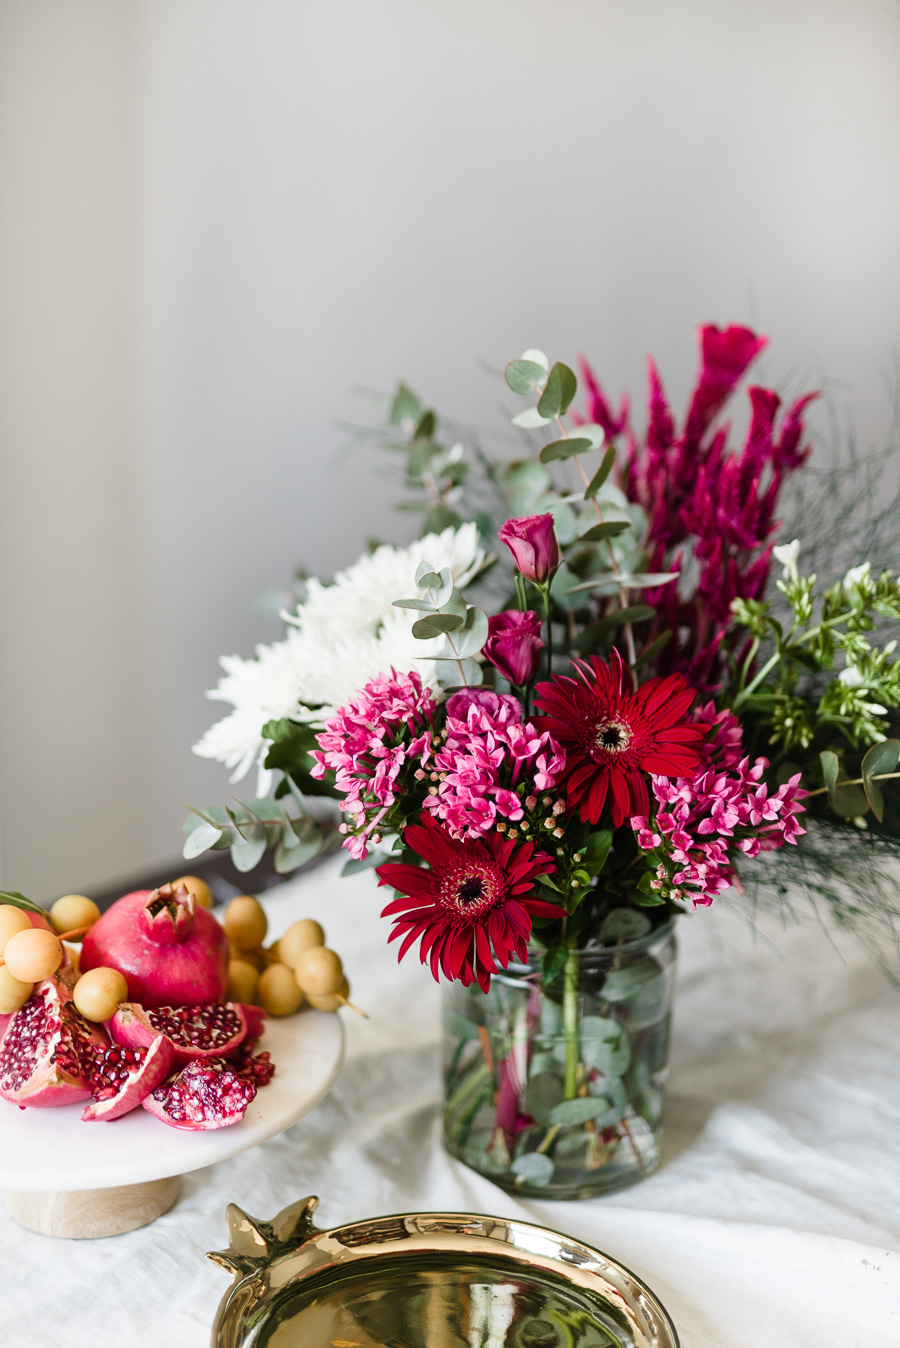 Sina mizrahis secret to flower arranging on a budget lifestyle im not a professional but ive gleaned some insight over the years because theres nothing i love more than a beautiful holiday table solutioingenieria Gallery